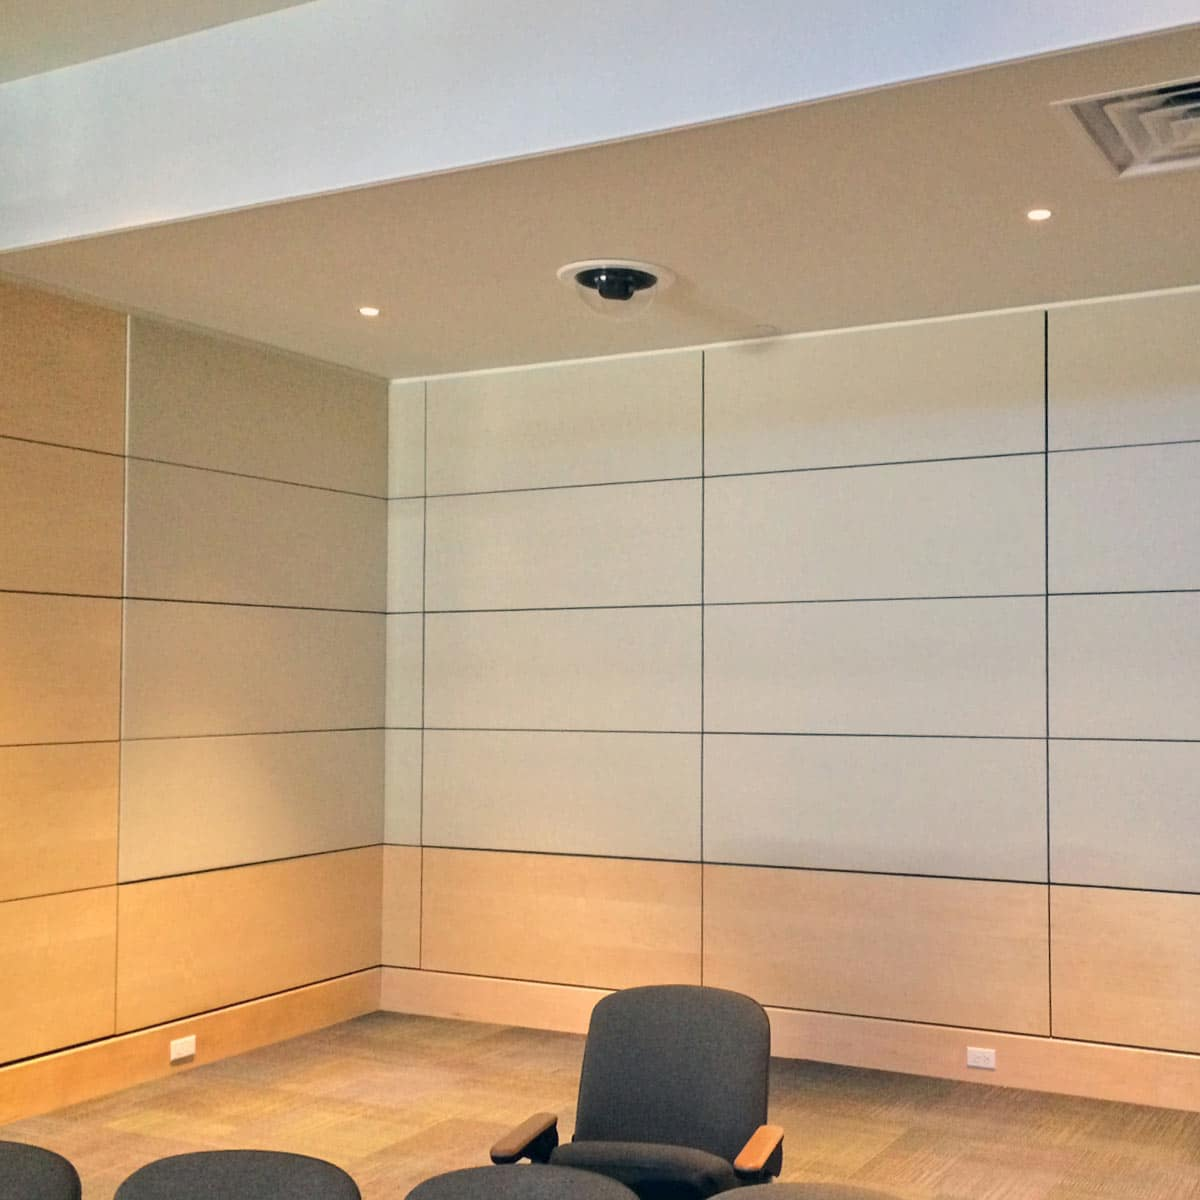 AcoustiWall Fabric Stretch System Installed At Stryker Center Appears Above  The Standard Fabric Wrapped Acoustical Panels